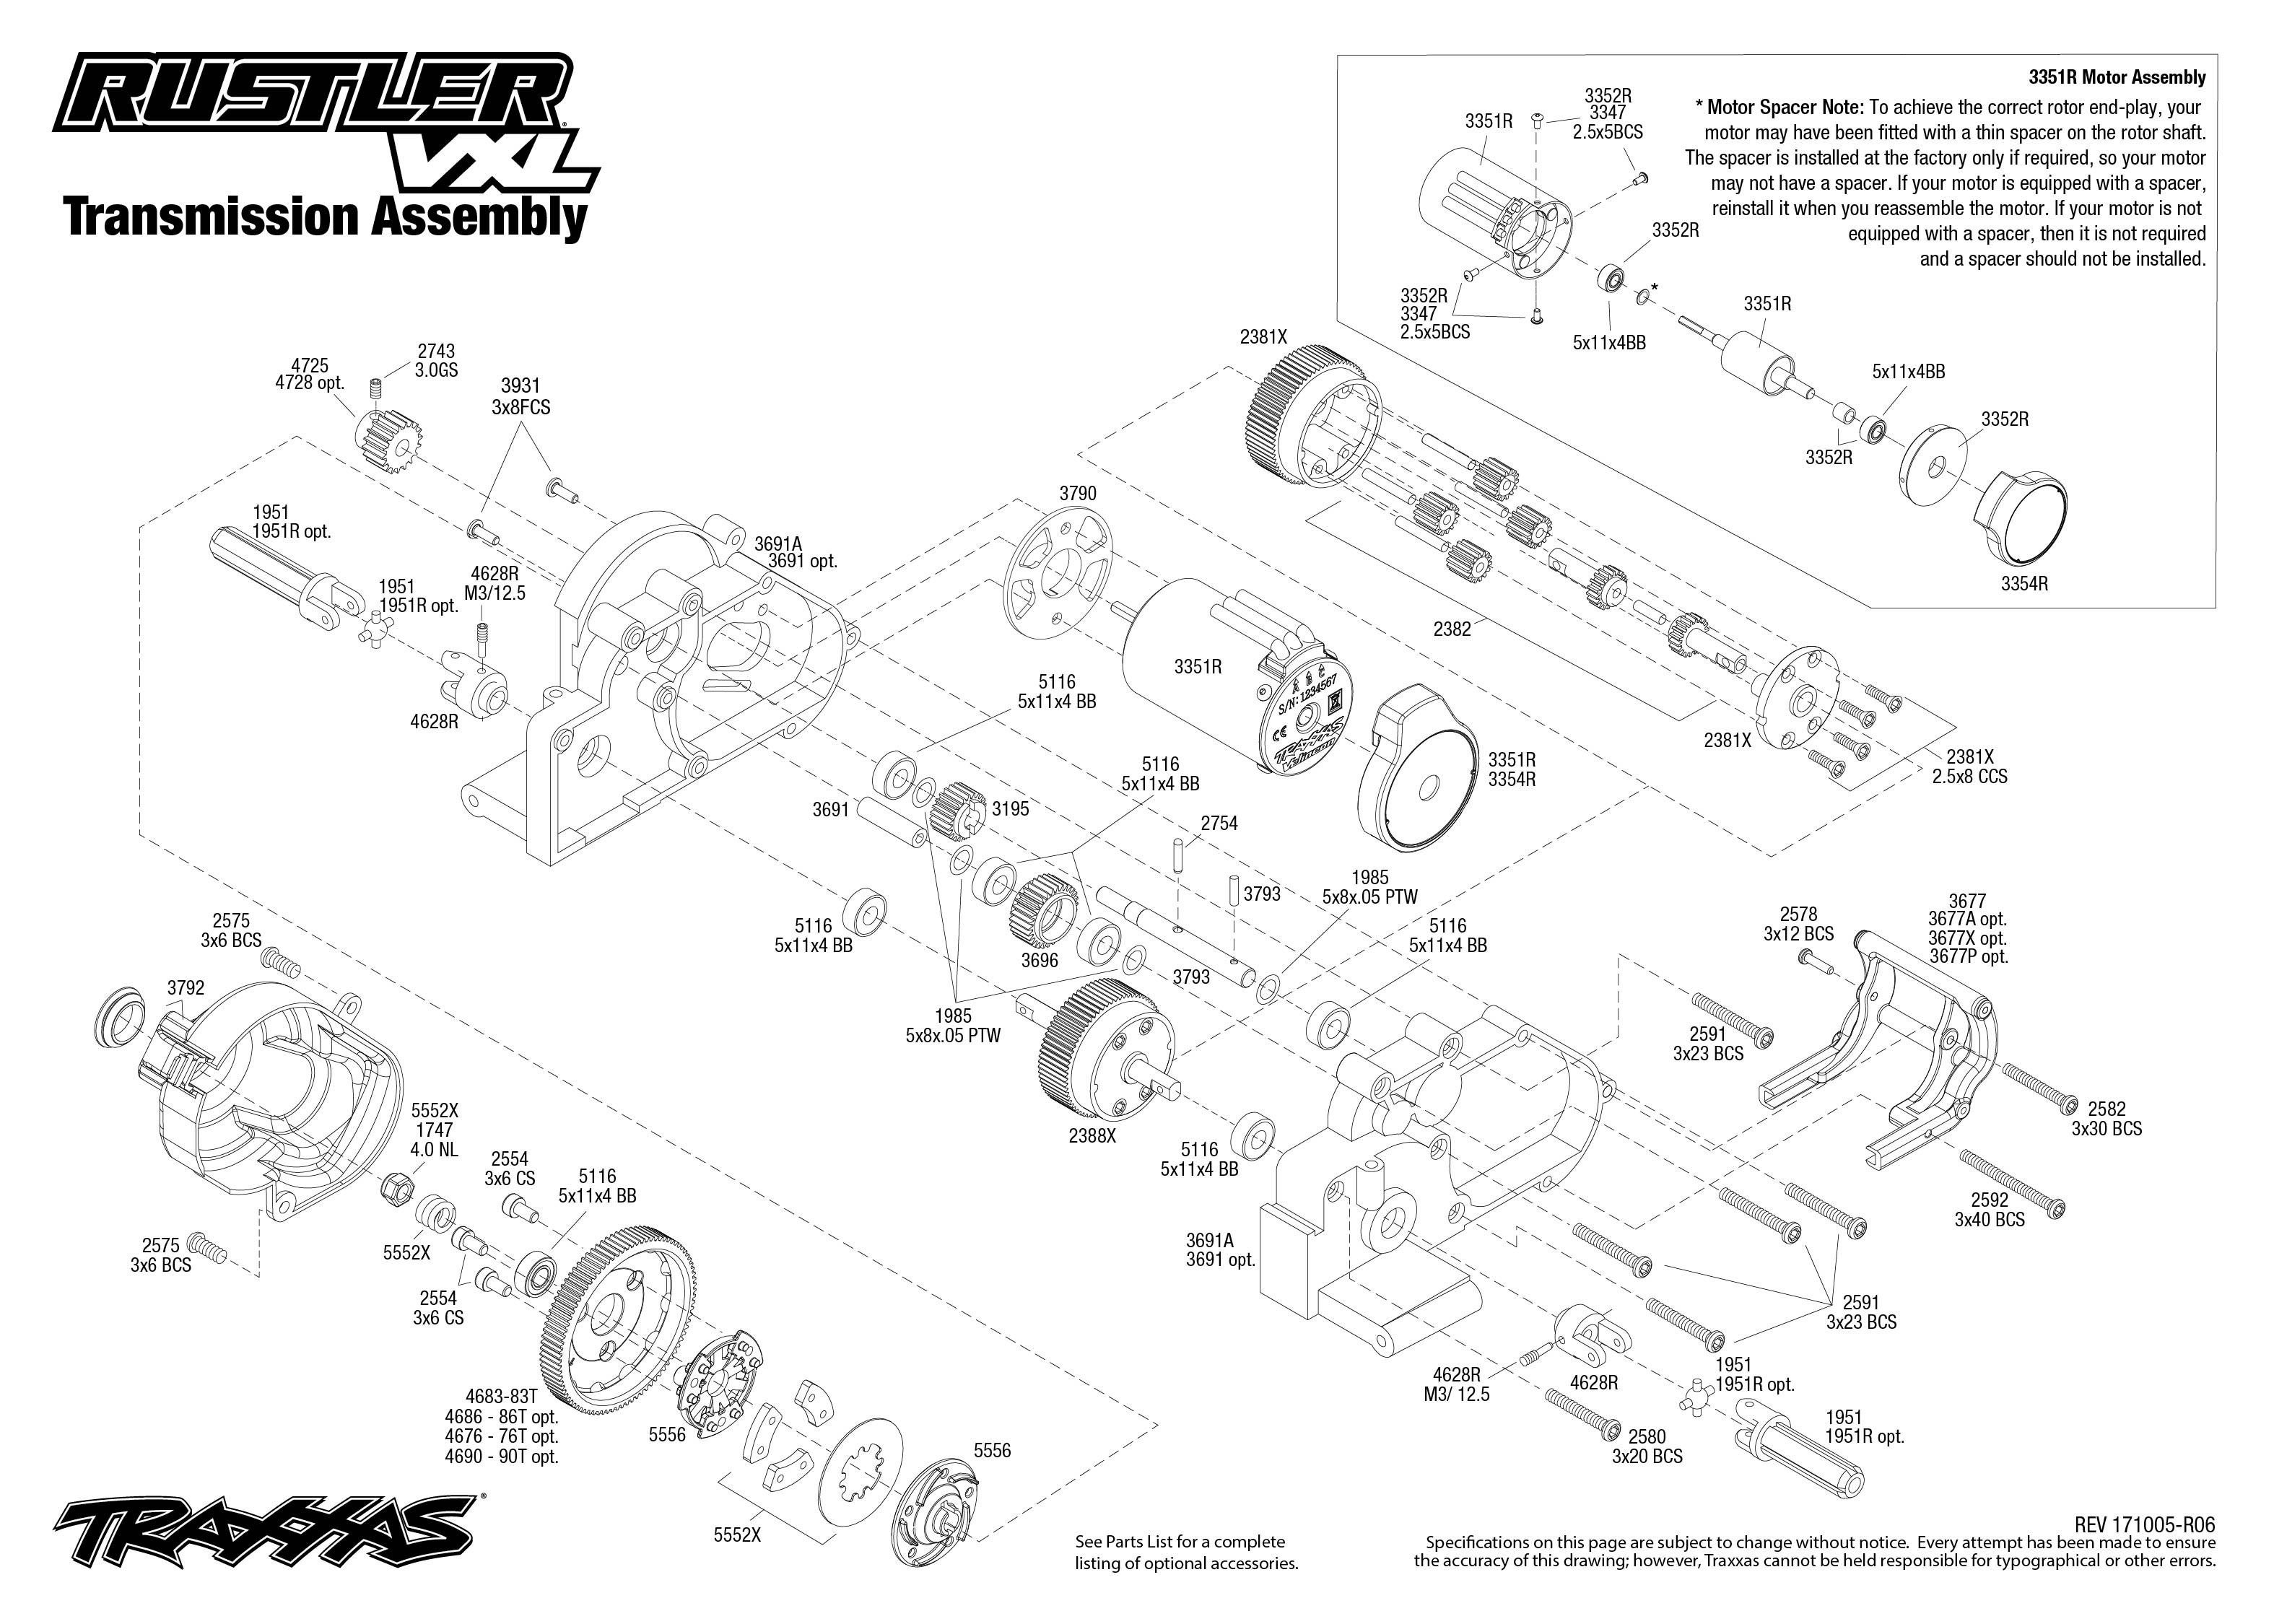 Rustler VXL (37076-3) Transmission Assembly Exploded View